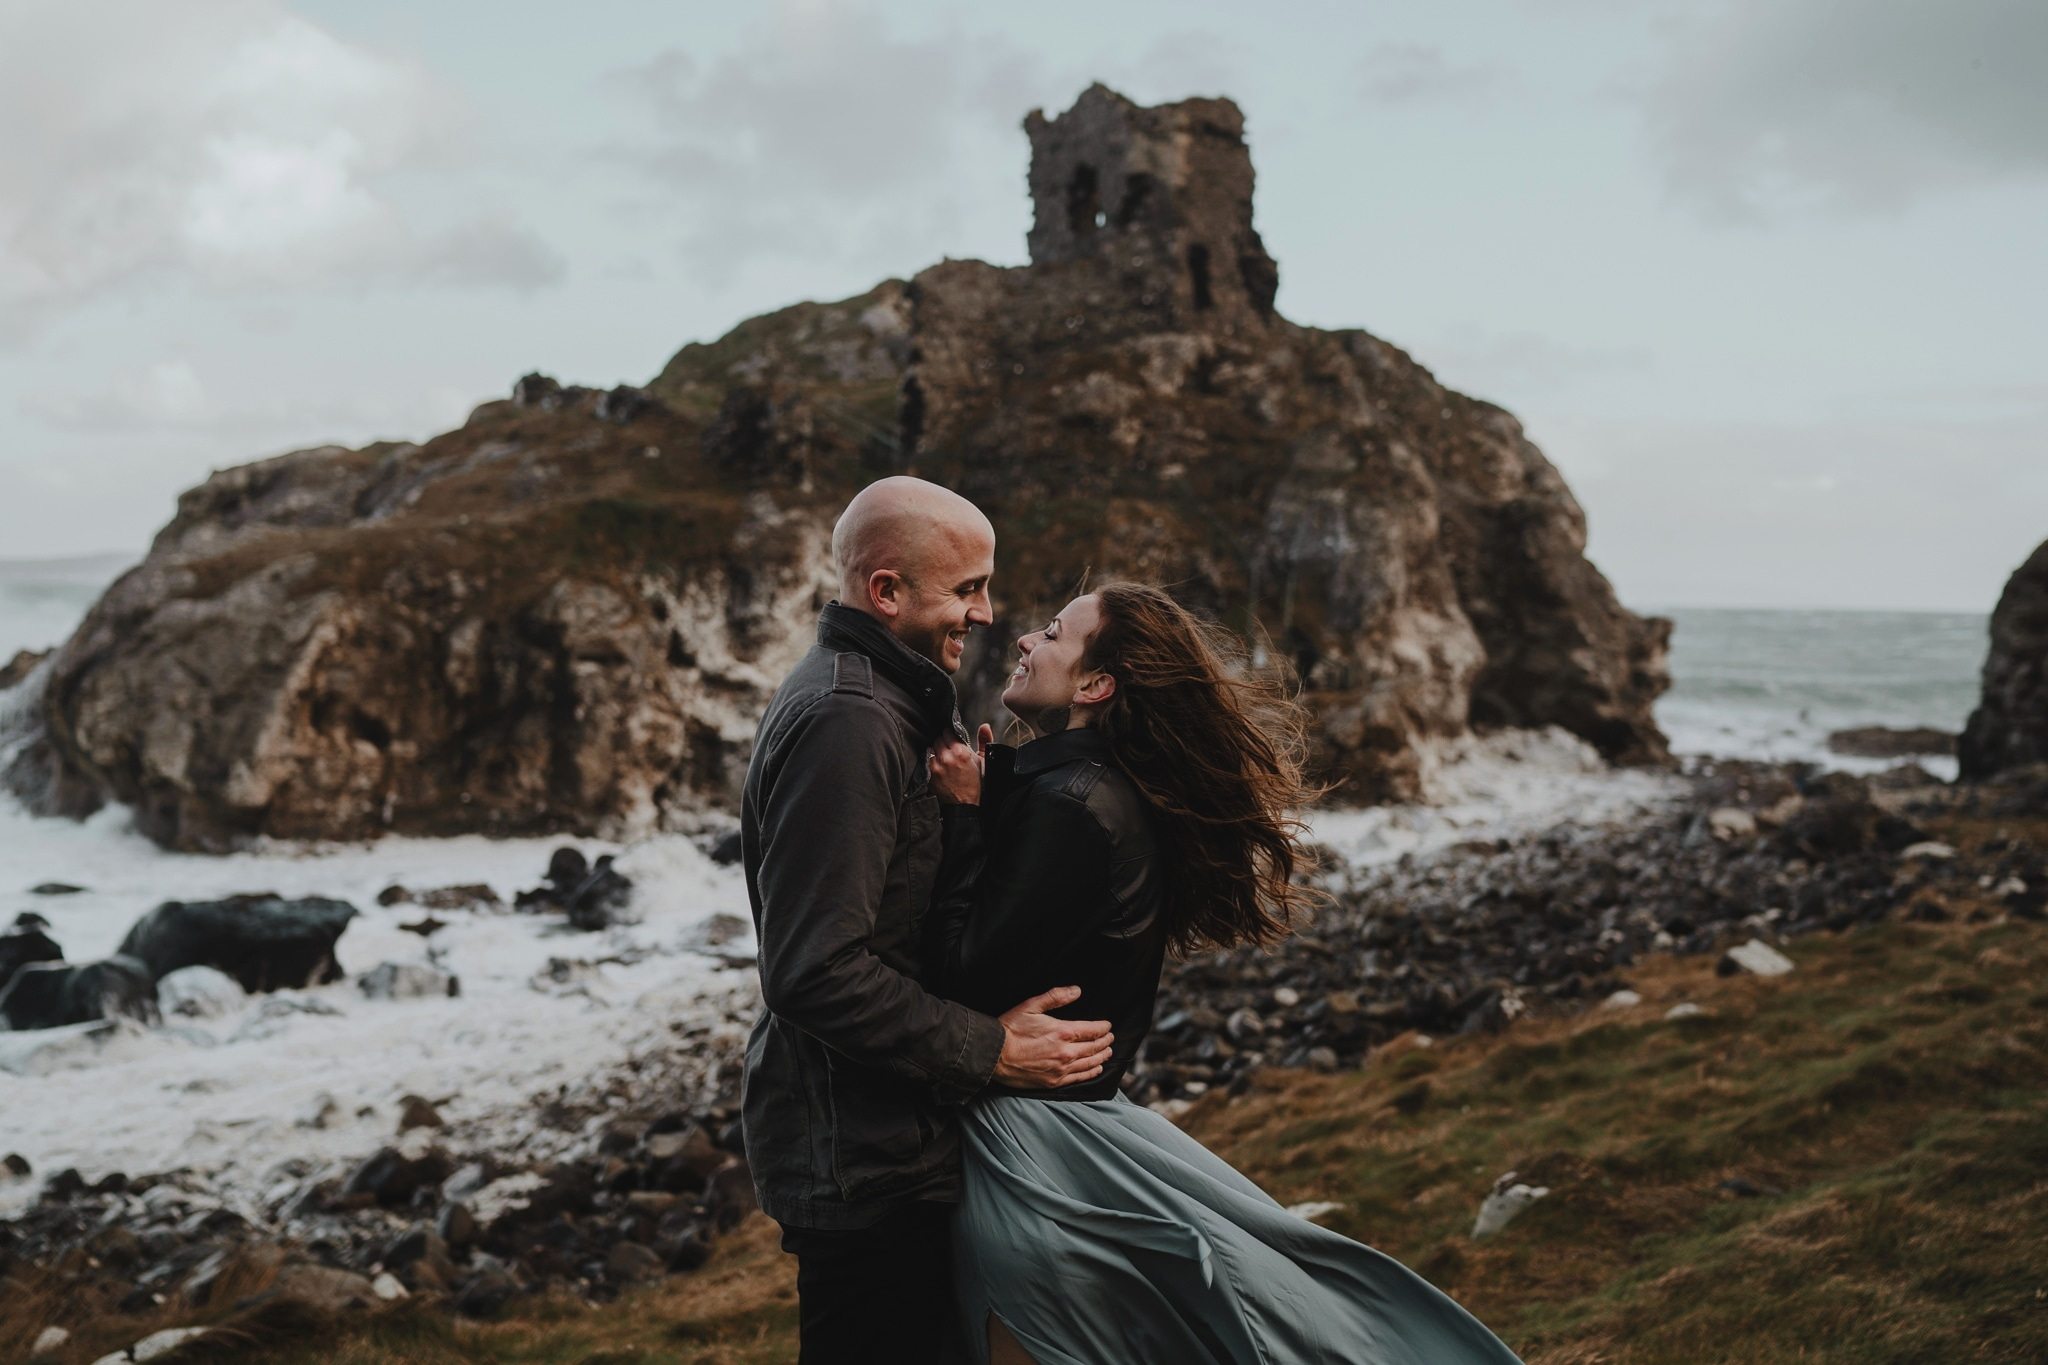 kinbane castle adventure elopement northern ireland photographers